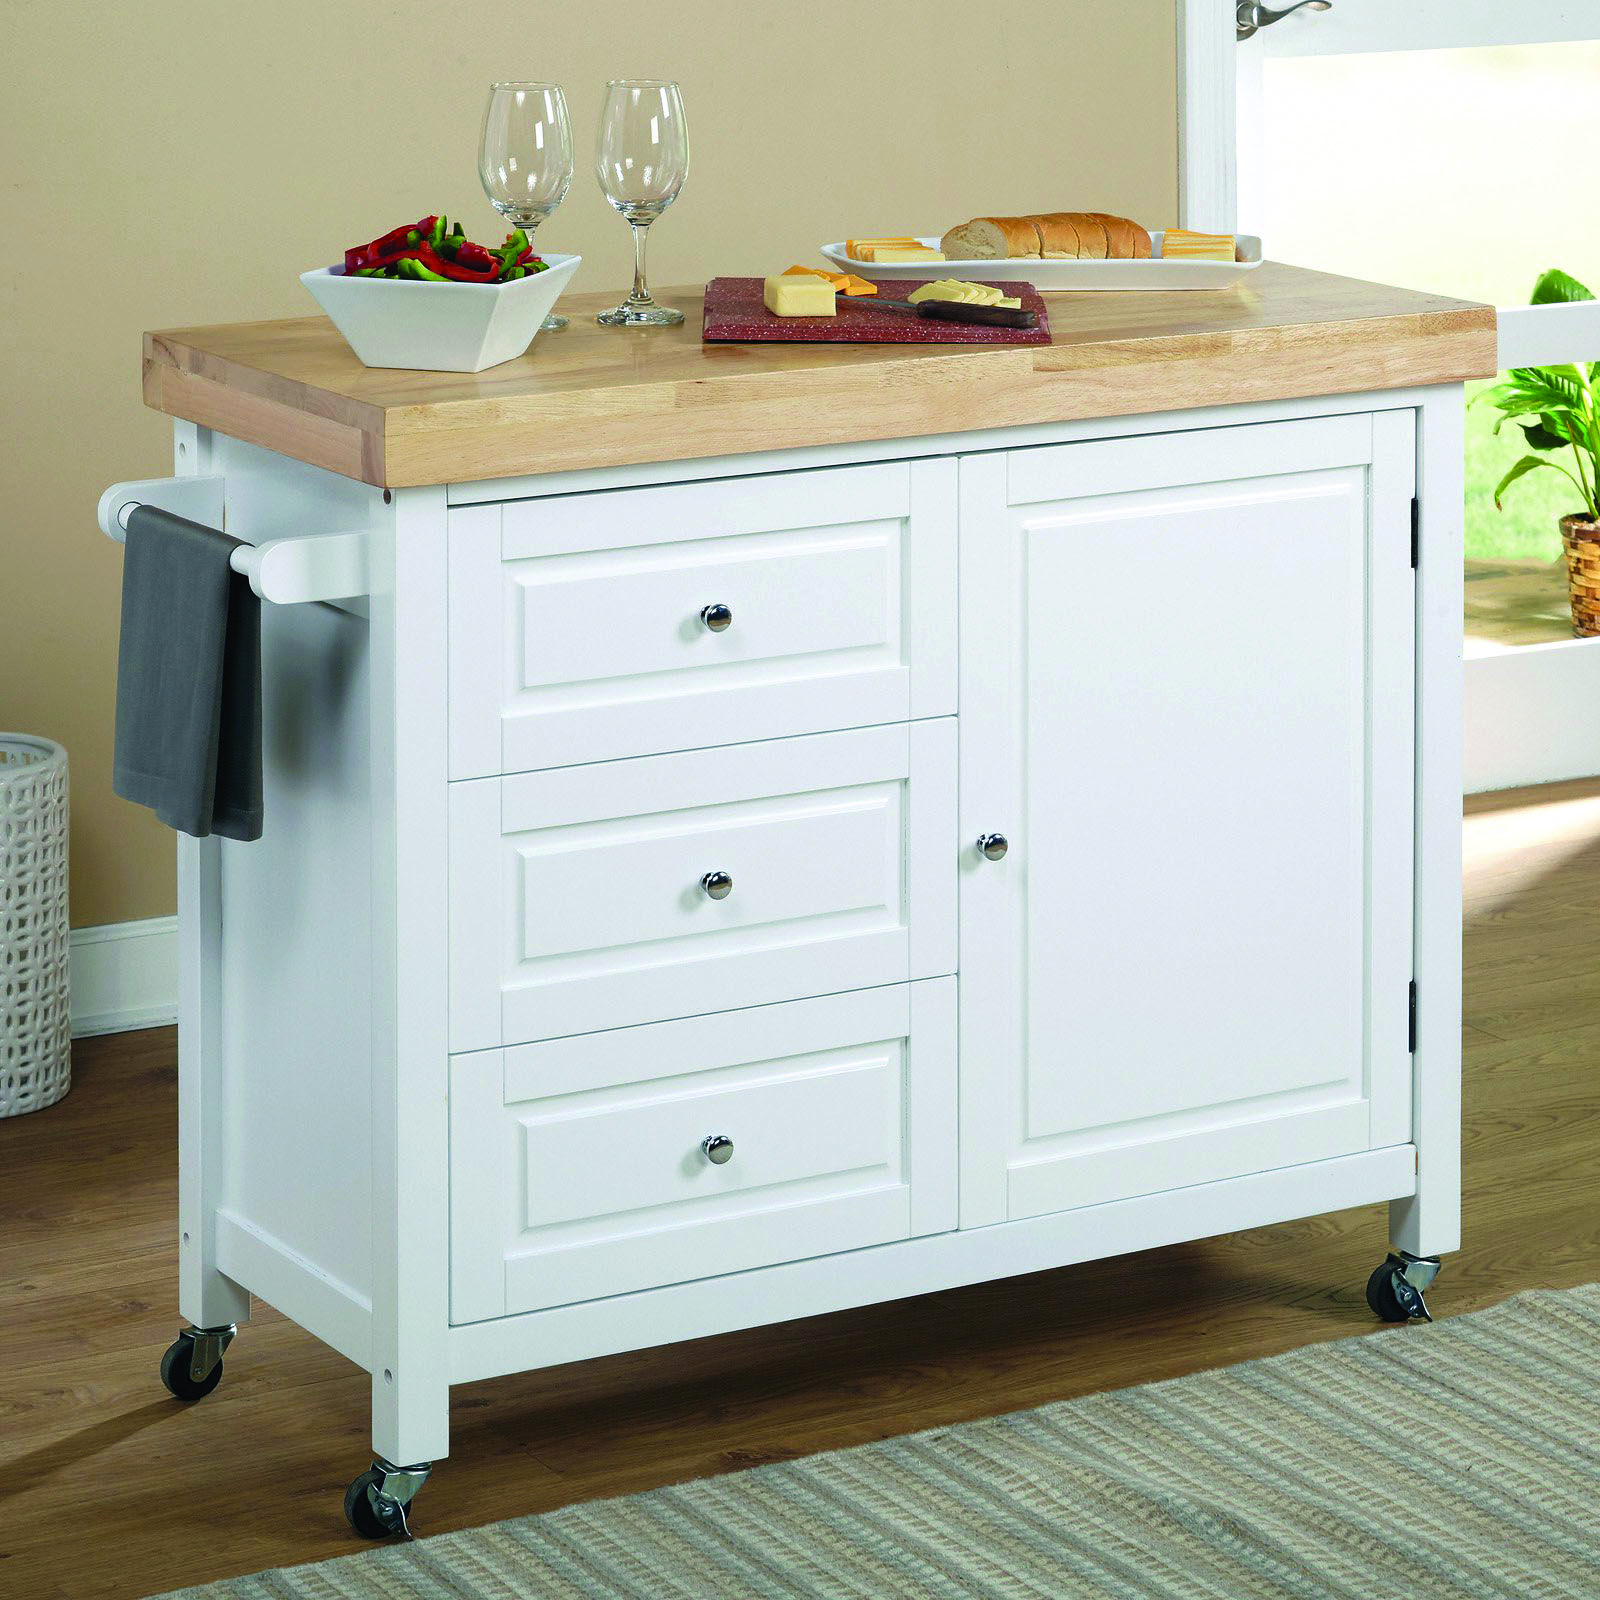 The Greatest Butcher Block Islands Along With Kitchen Area Carts